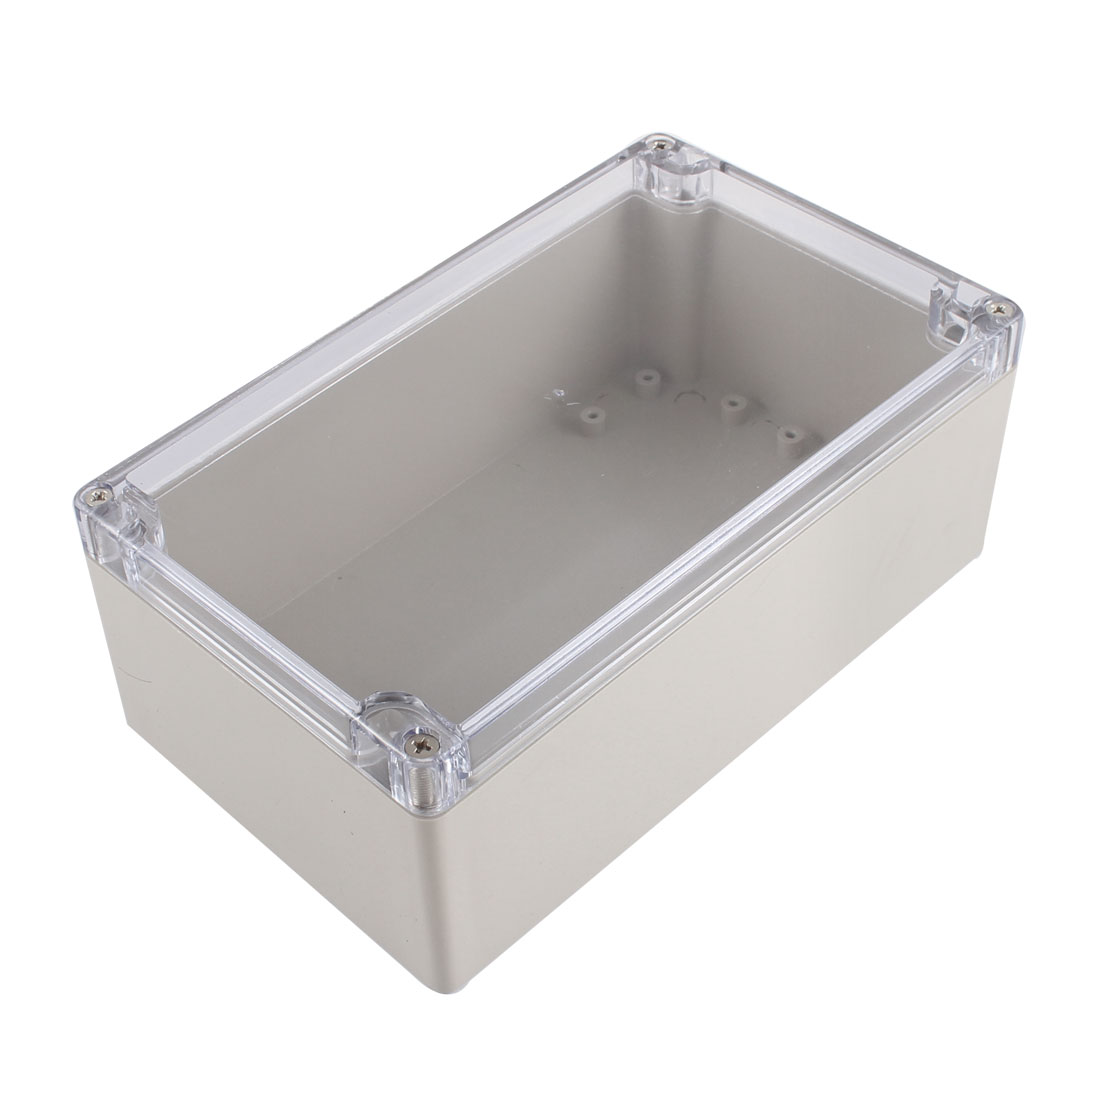 Dustproof IP65 Electronic Junction Project Box Enclosure Case 20 x 12 x 7.5cm